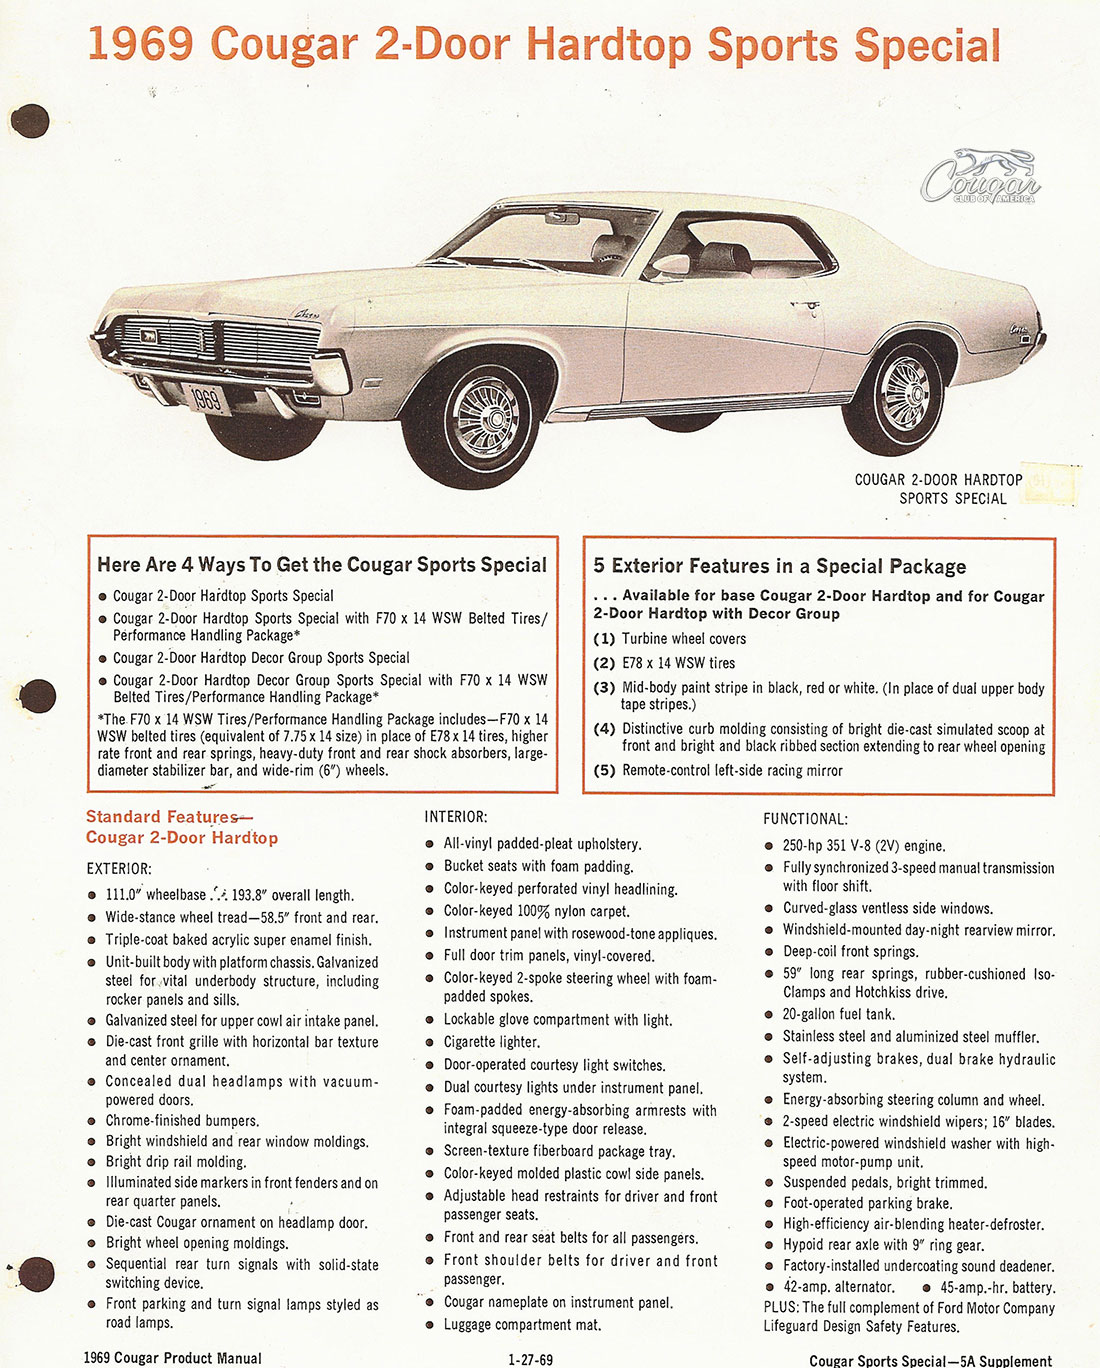 1969 Mercury Cougar Sports Special Product Manual Supplement Page 1 of 2